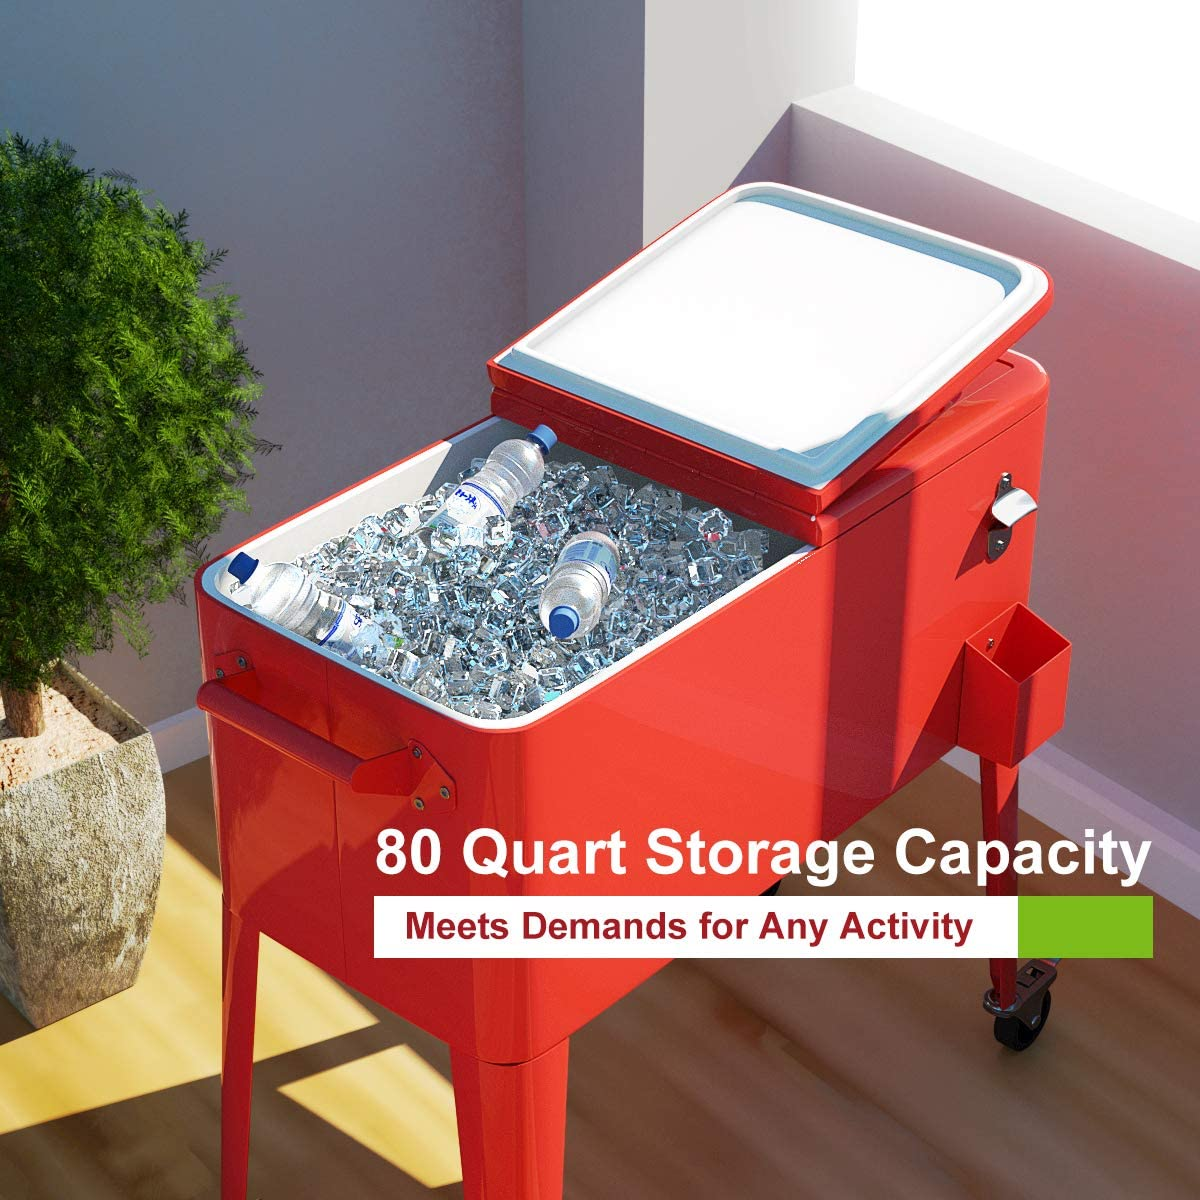 80 quart cooler cart outdoor cooler cart on wheels patio rolling ice chest for beer beverage party portable cooler with casters beverage cooler cart